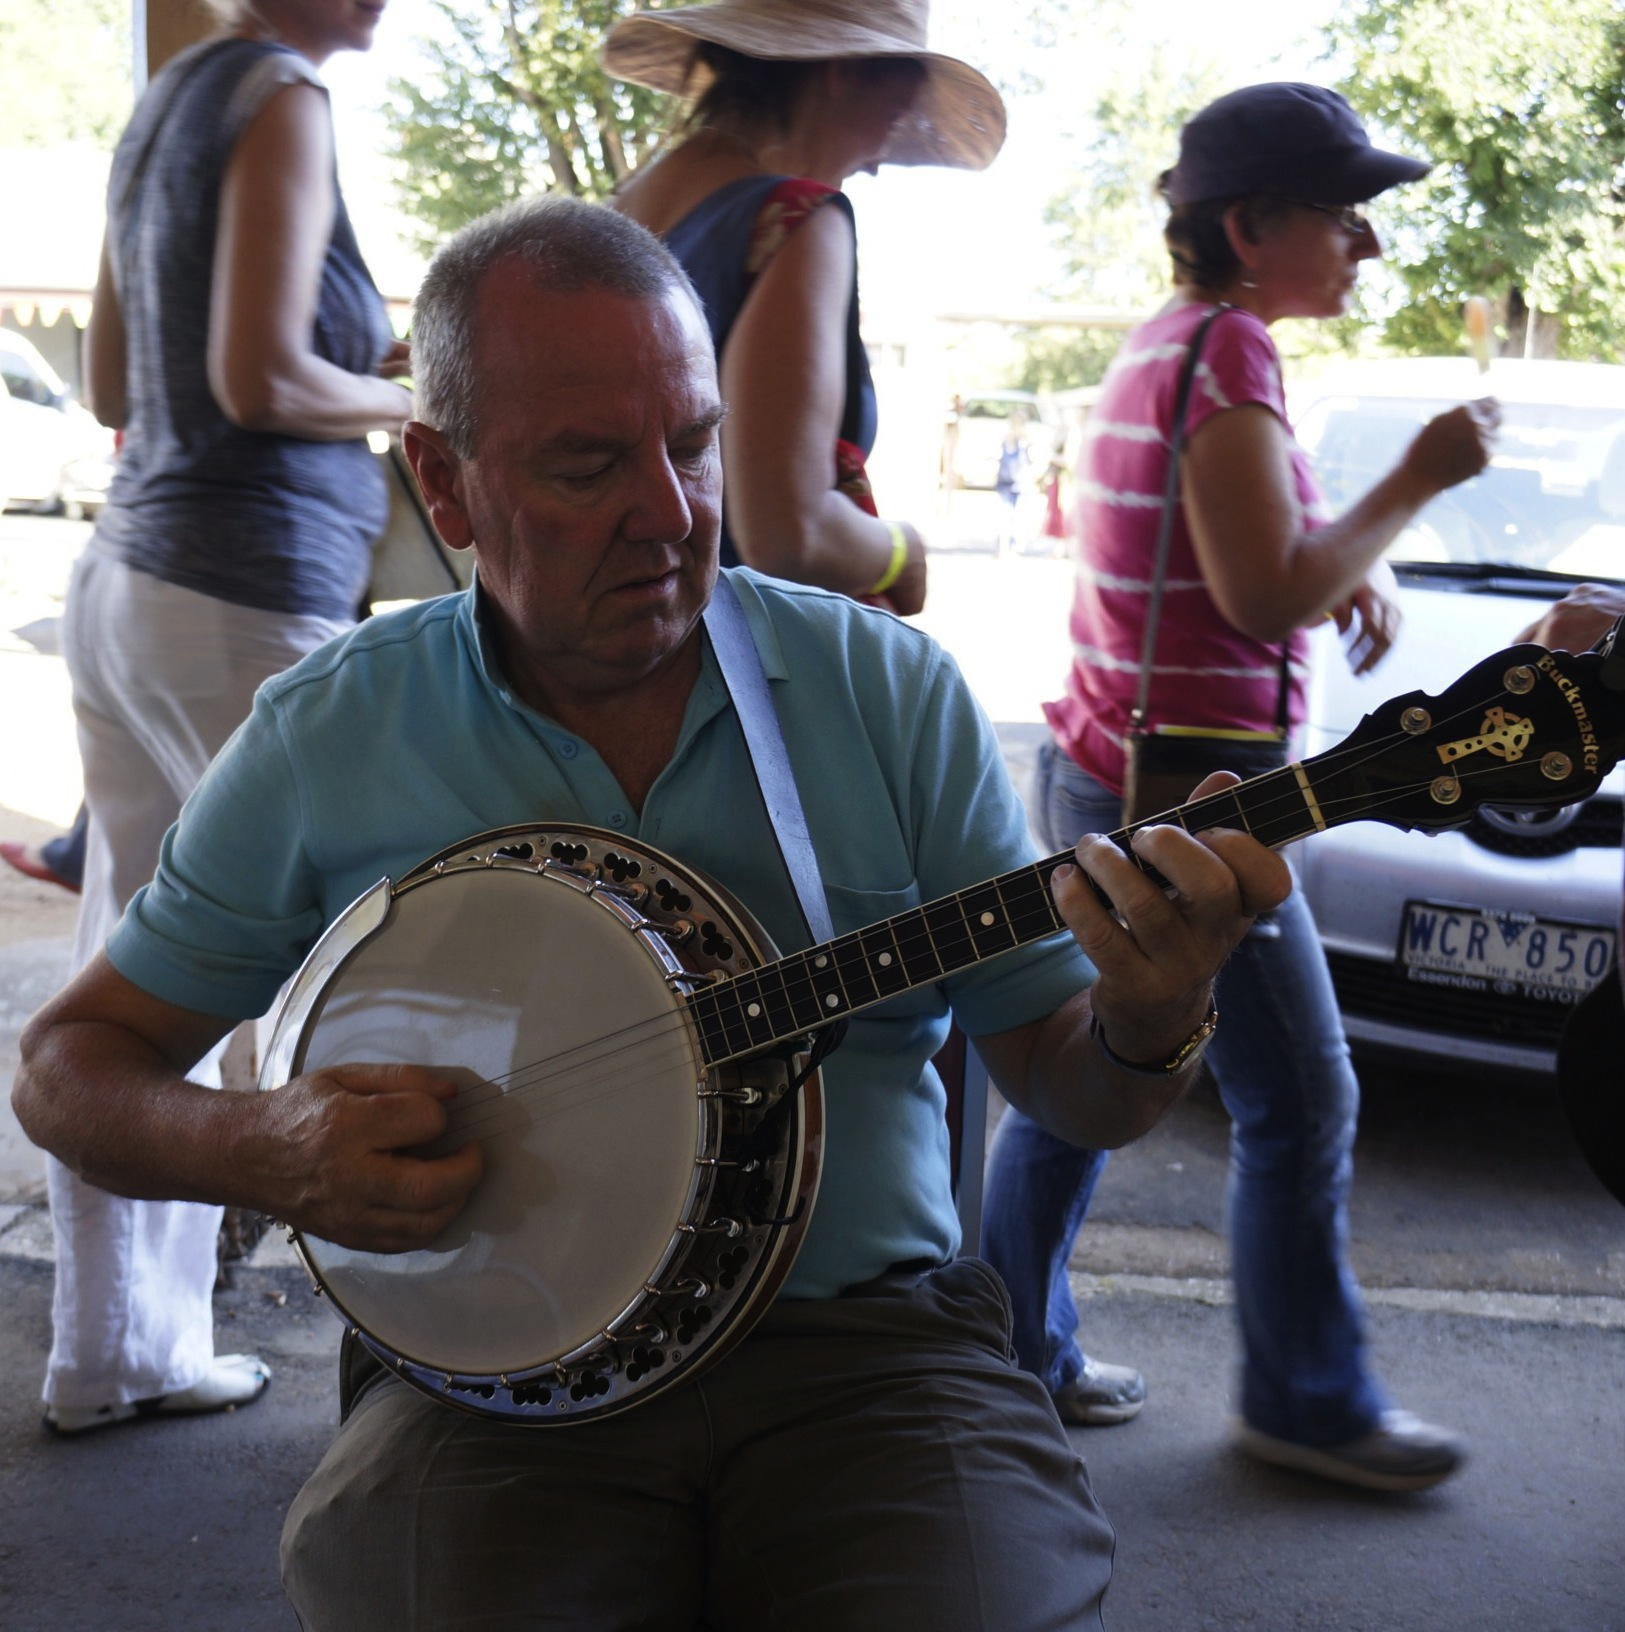 Tony O'Rourke plays banjo at Newstead